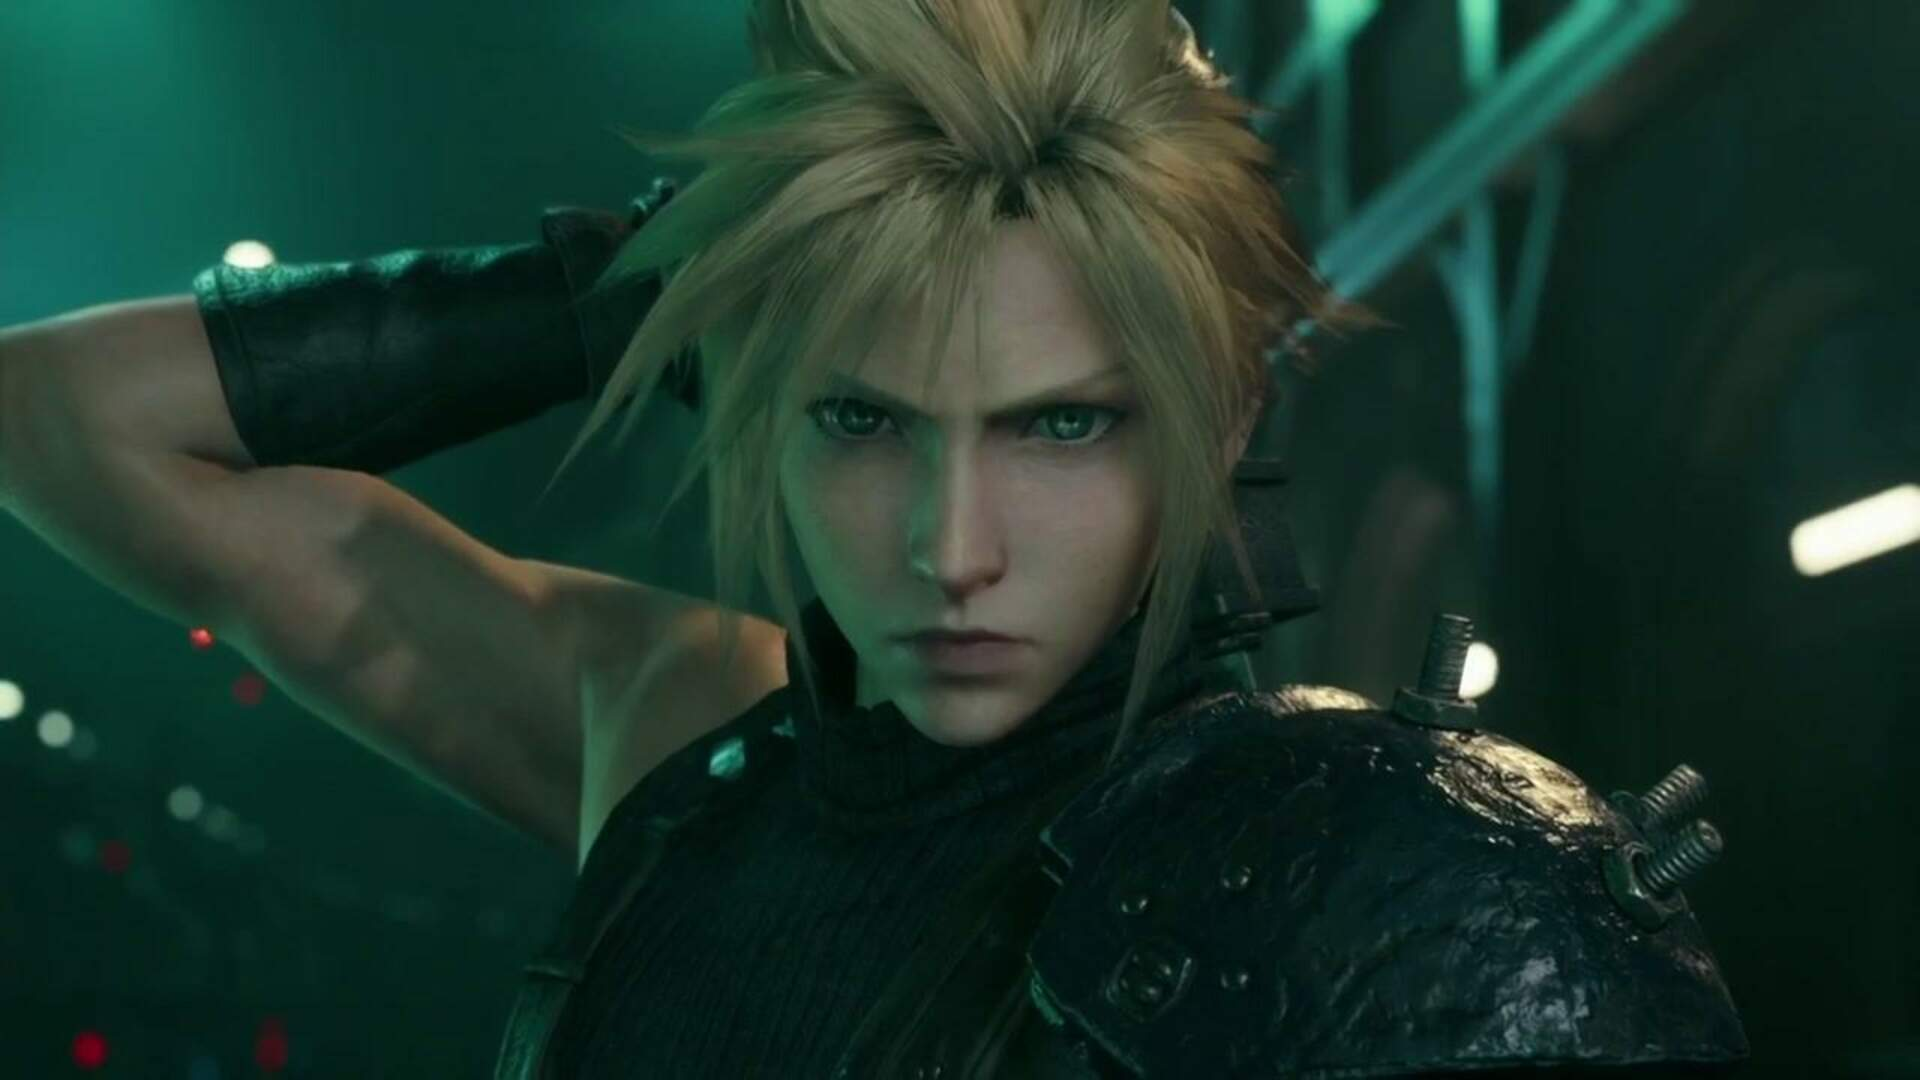 Watch the New Final Fantasy 7 Remake Trailer From The Game Awards Right Here